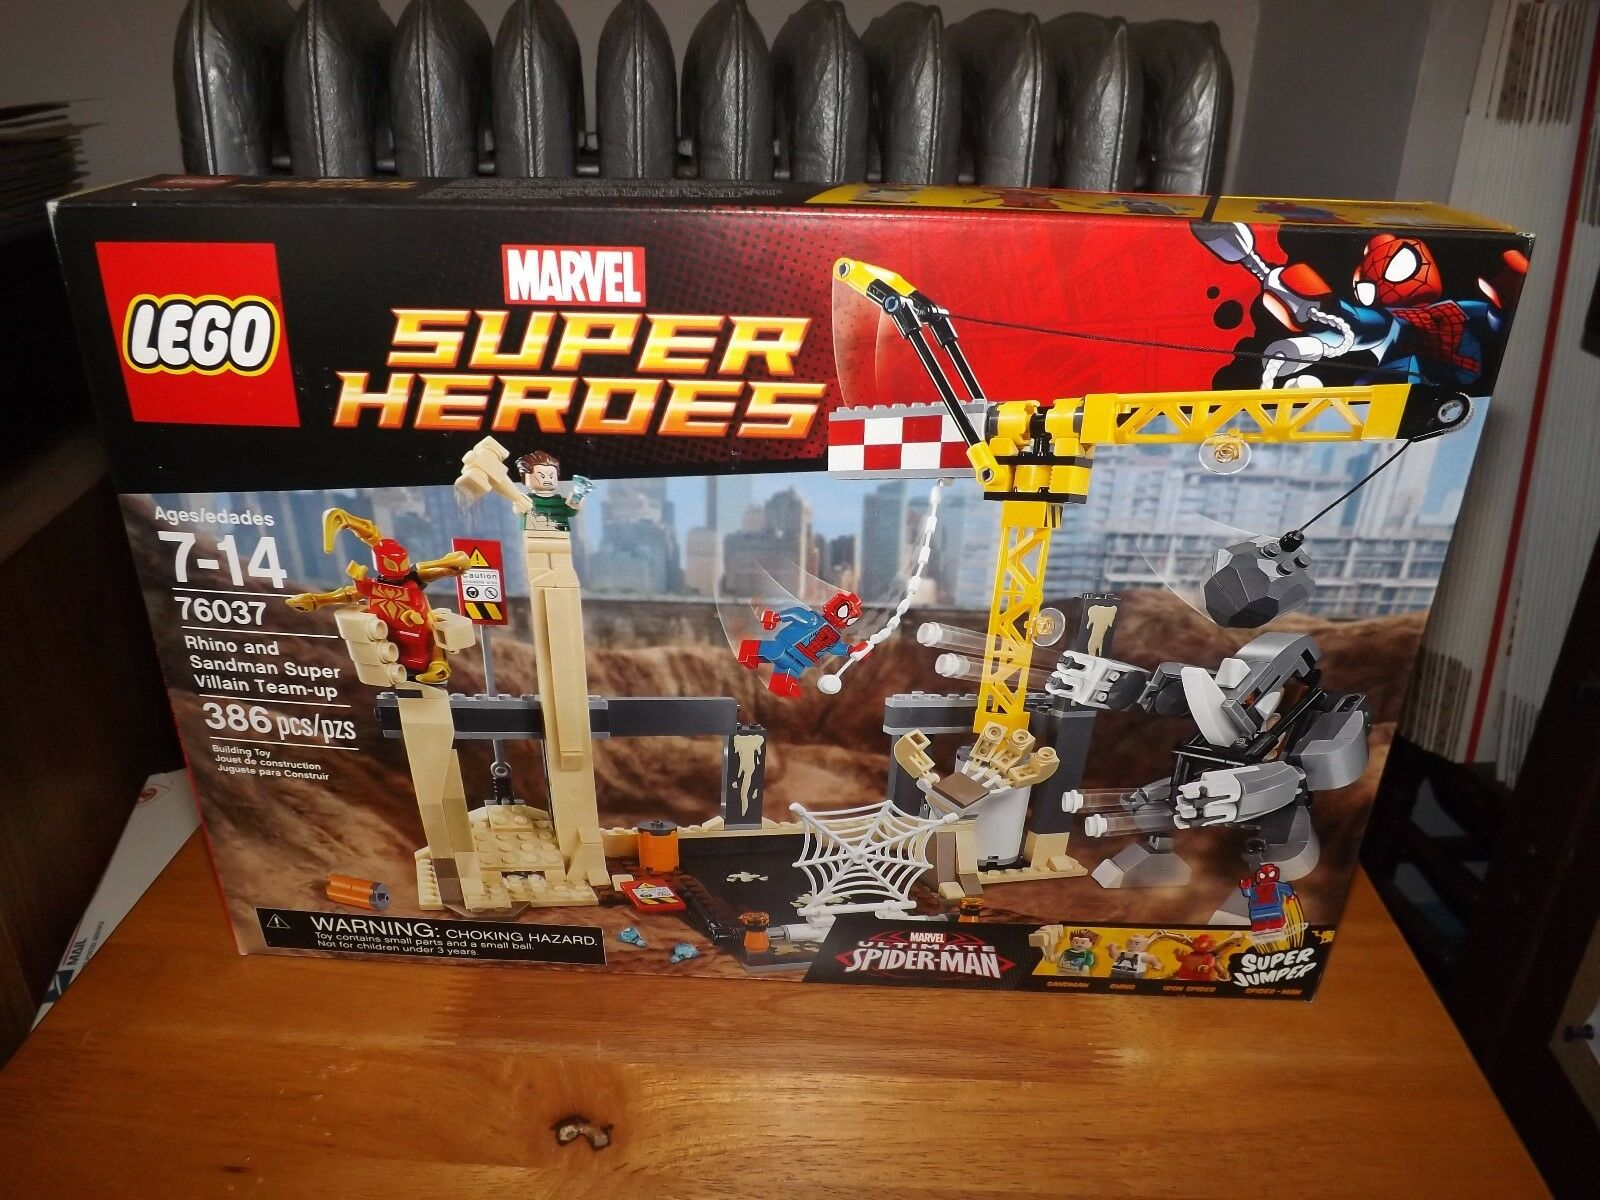 LEGO, SPIDER-MAN, RHINO AND SANDMAN SUPER VILLAIN TEAM UP,  76037, NIB, 2015